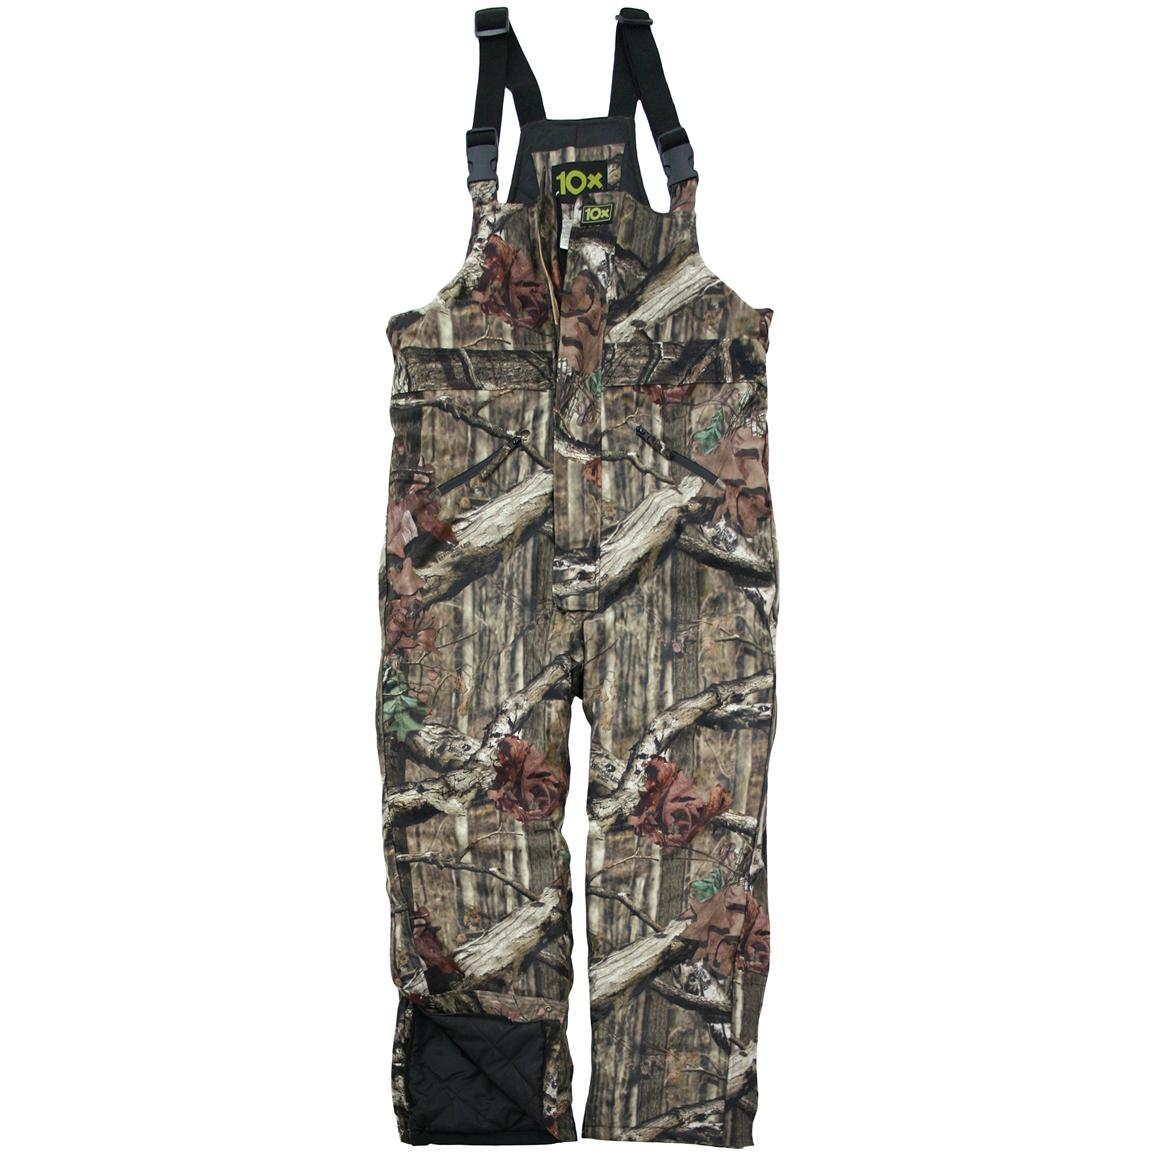 Walls® Extreme Series Waterproof 10X Thinsulate™ Insulated Camo Overalls, MOBU Infinity